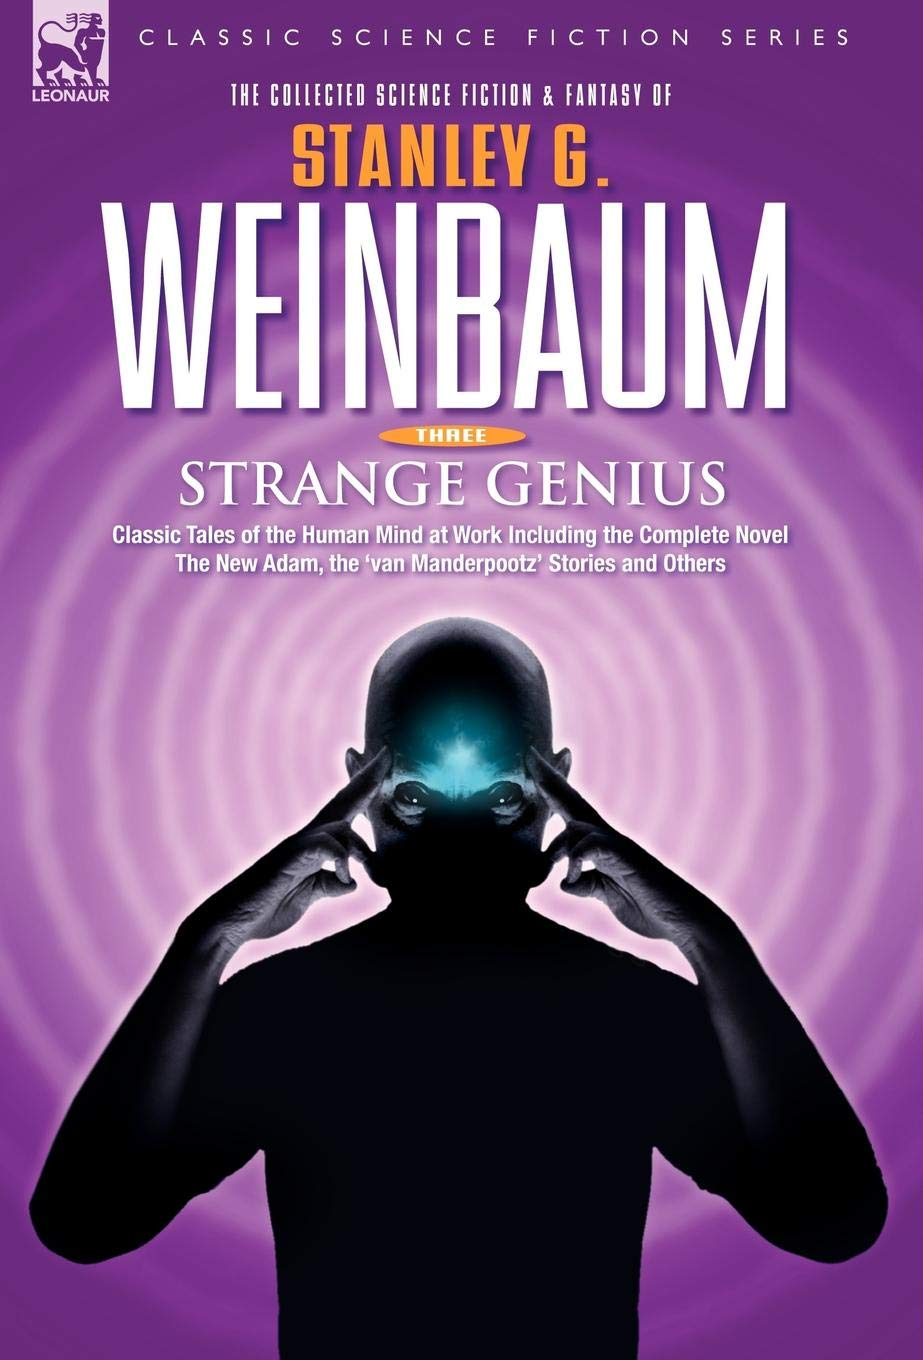 Read Online STRANGE GENIUS - Classic Tales of the Human Mind at Work Including the Complete Novel The New Adam, the 'van Manderpootz' Stories and Others (v. 3) pdf